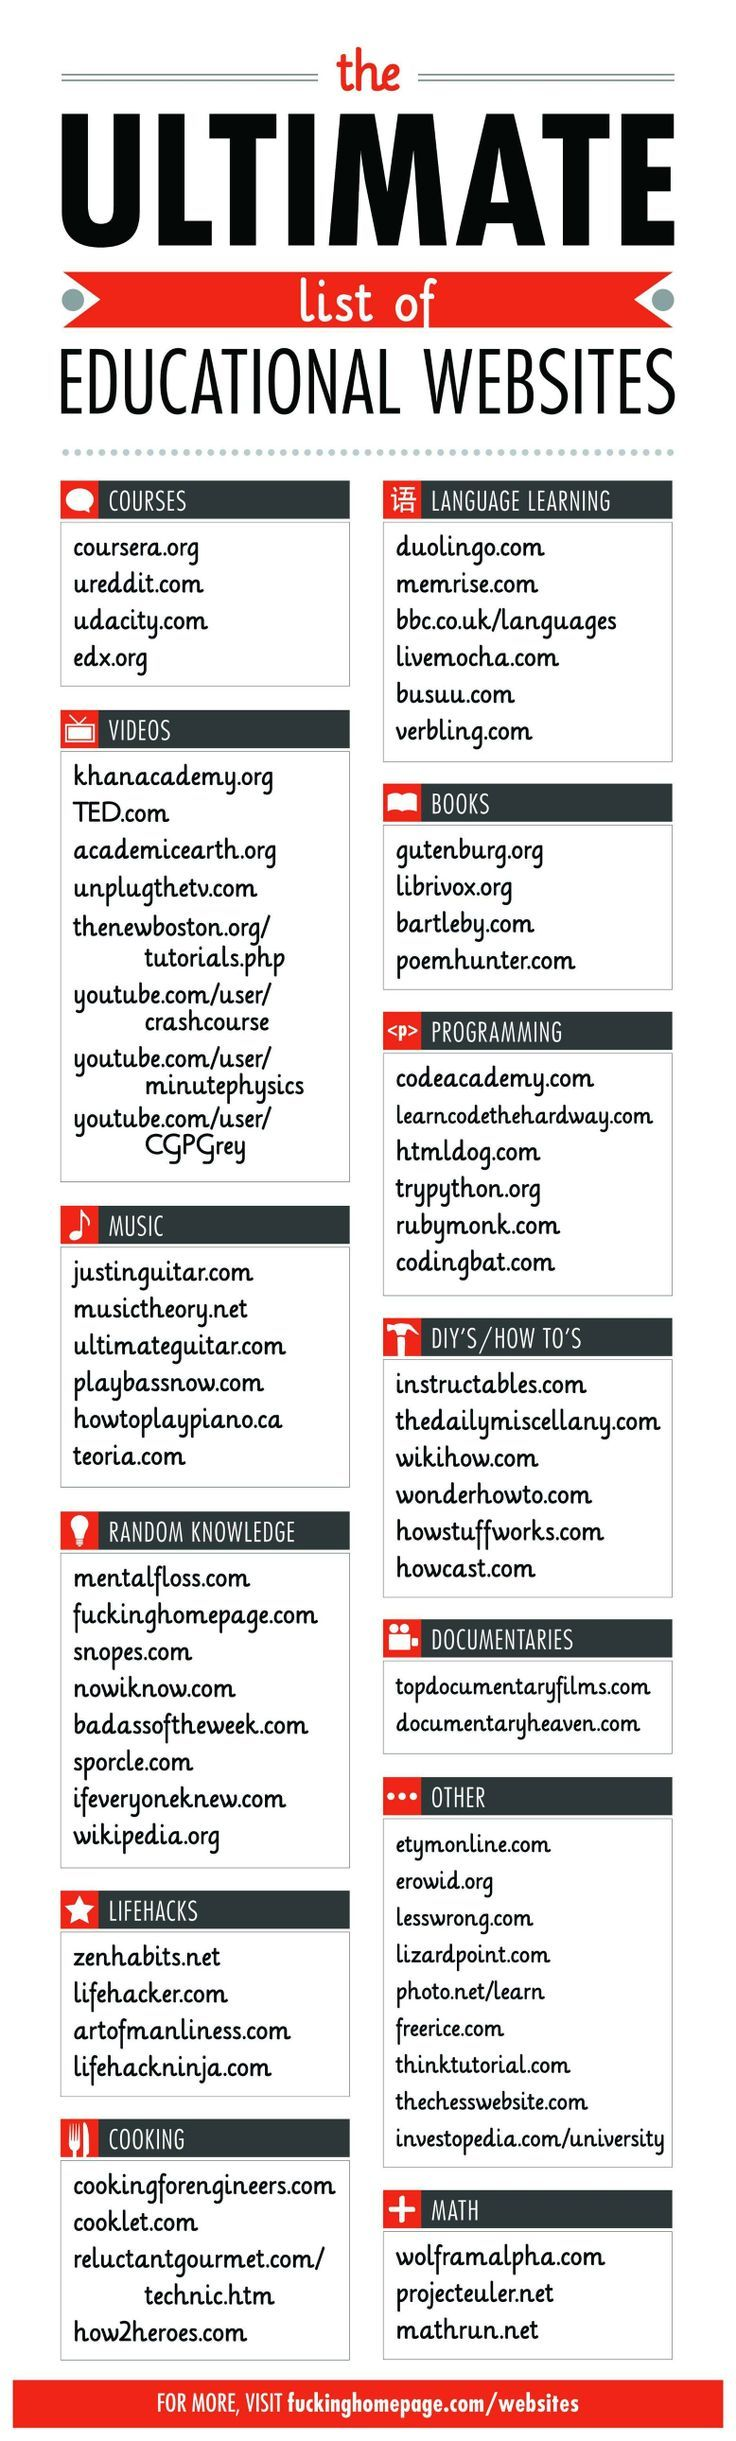 The ultimate list of educational websites. - Will have to check them out!